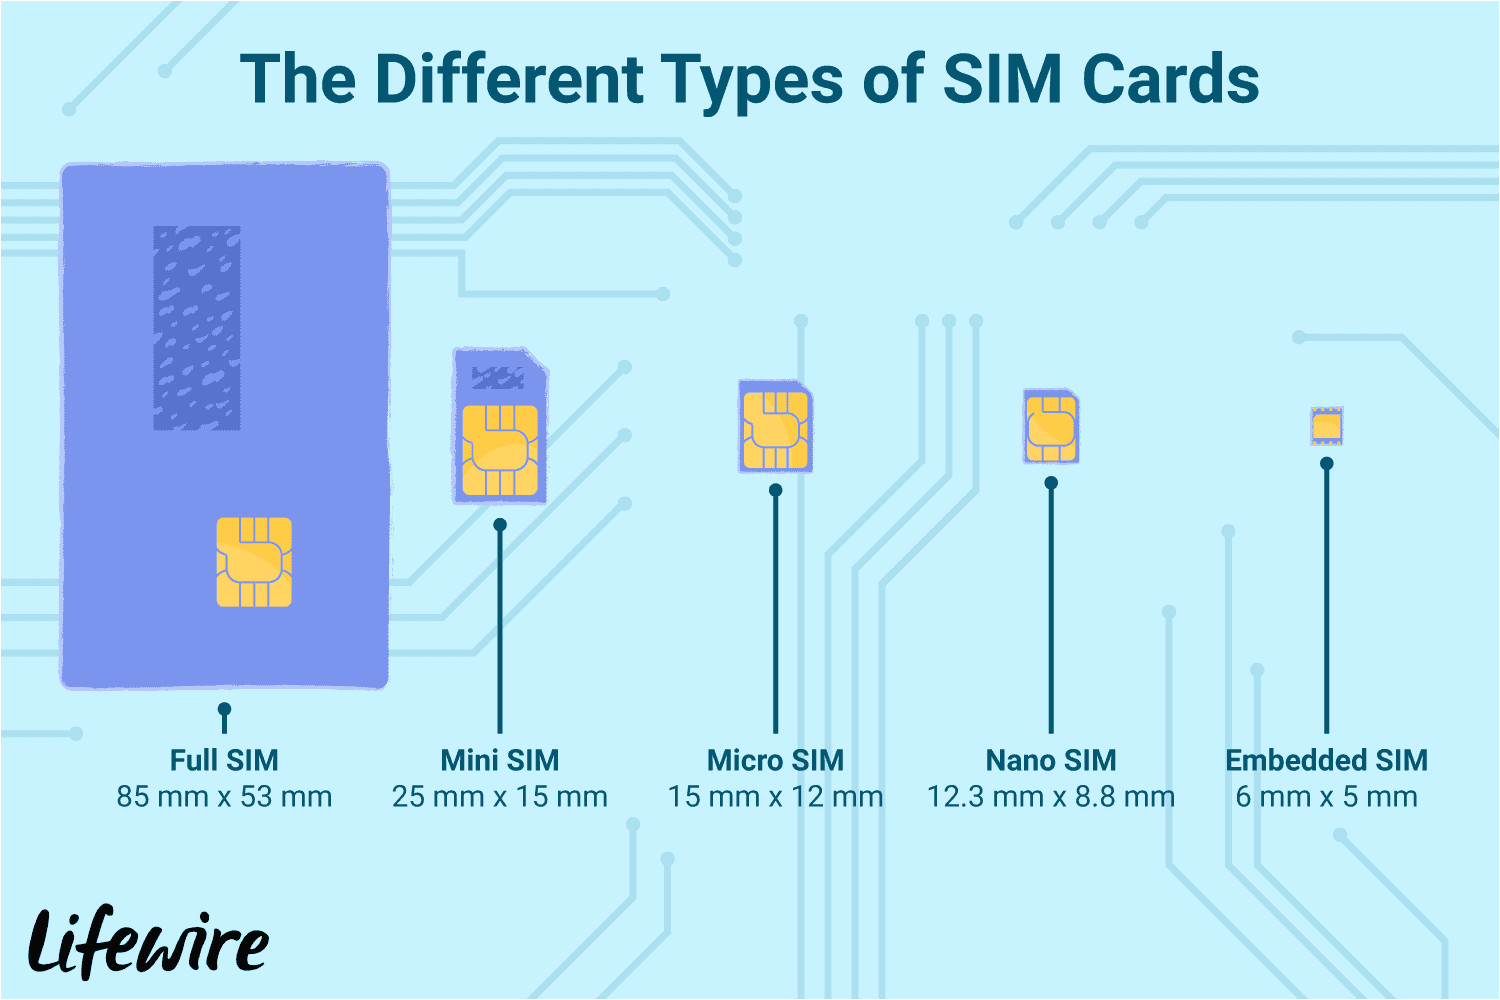 what are sim cards 577532 v3 5c10400746e0fb0001bed0b7 98b42ea418b34dd68dd7585bc870815b png